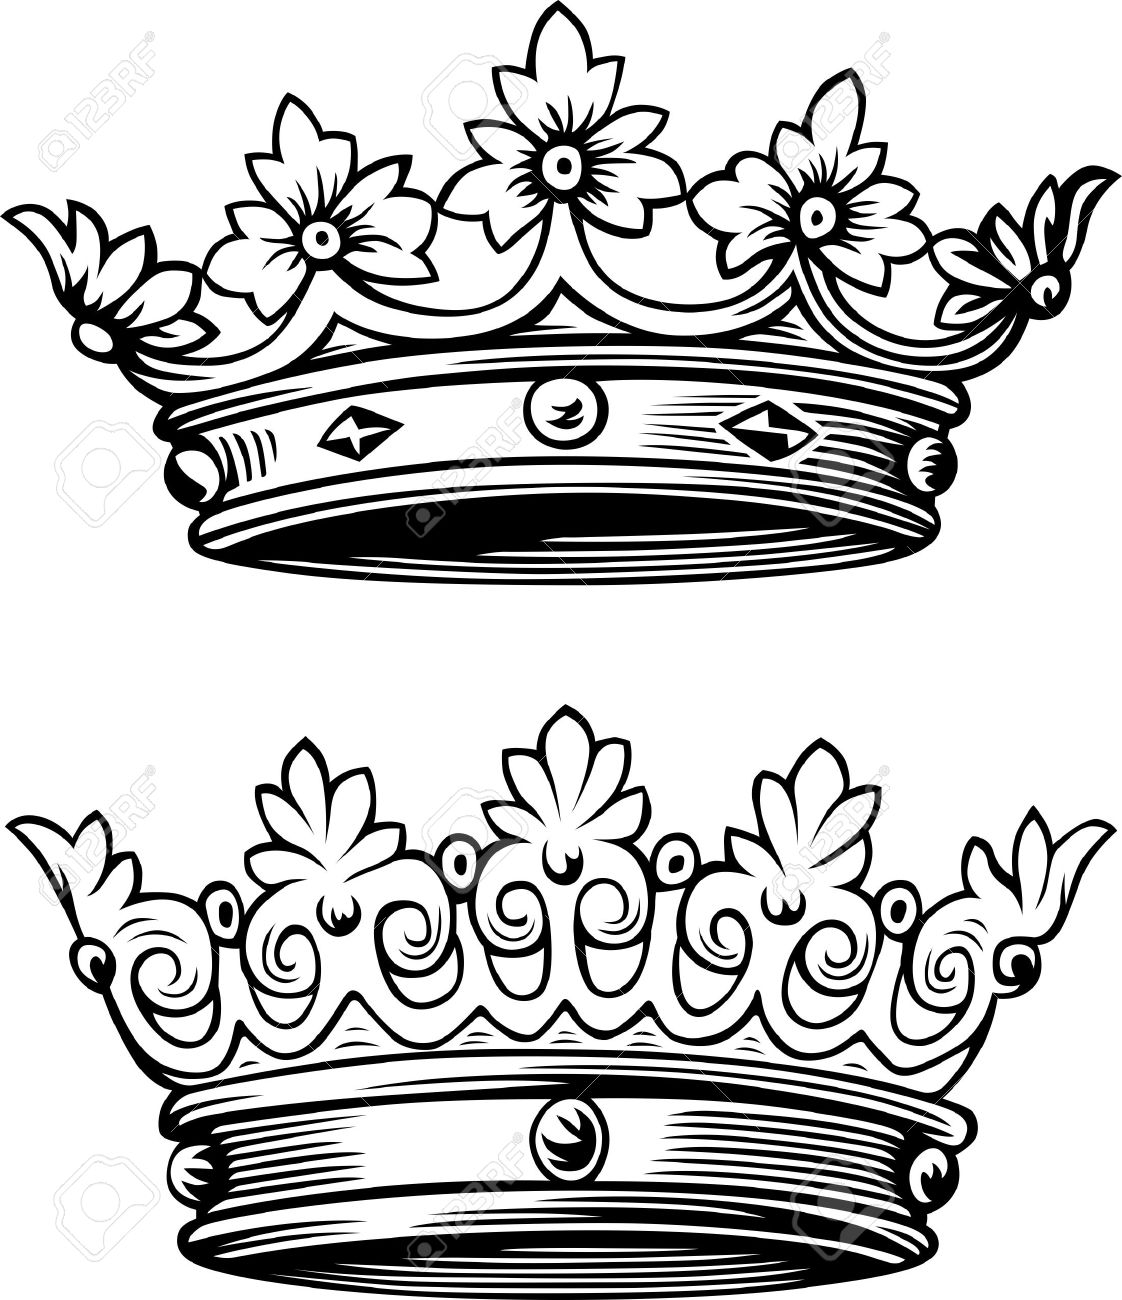 Line Drawing Crown : Crown drawing images at getdrawings free for